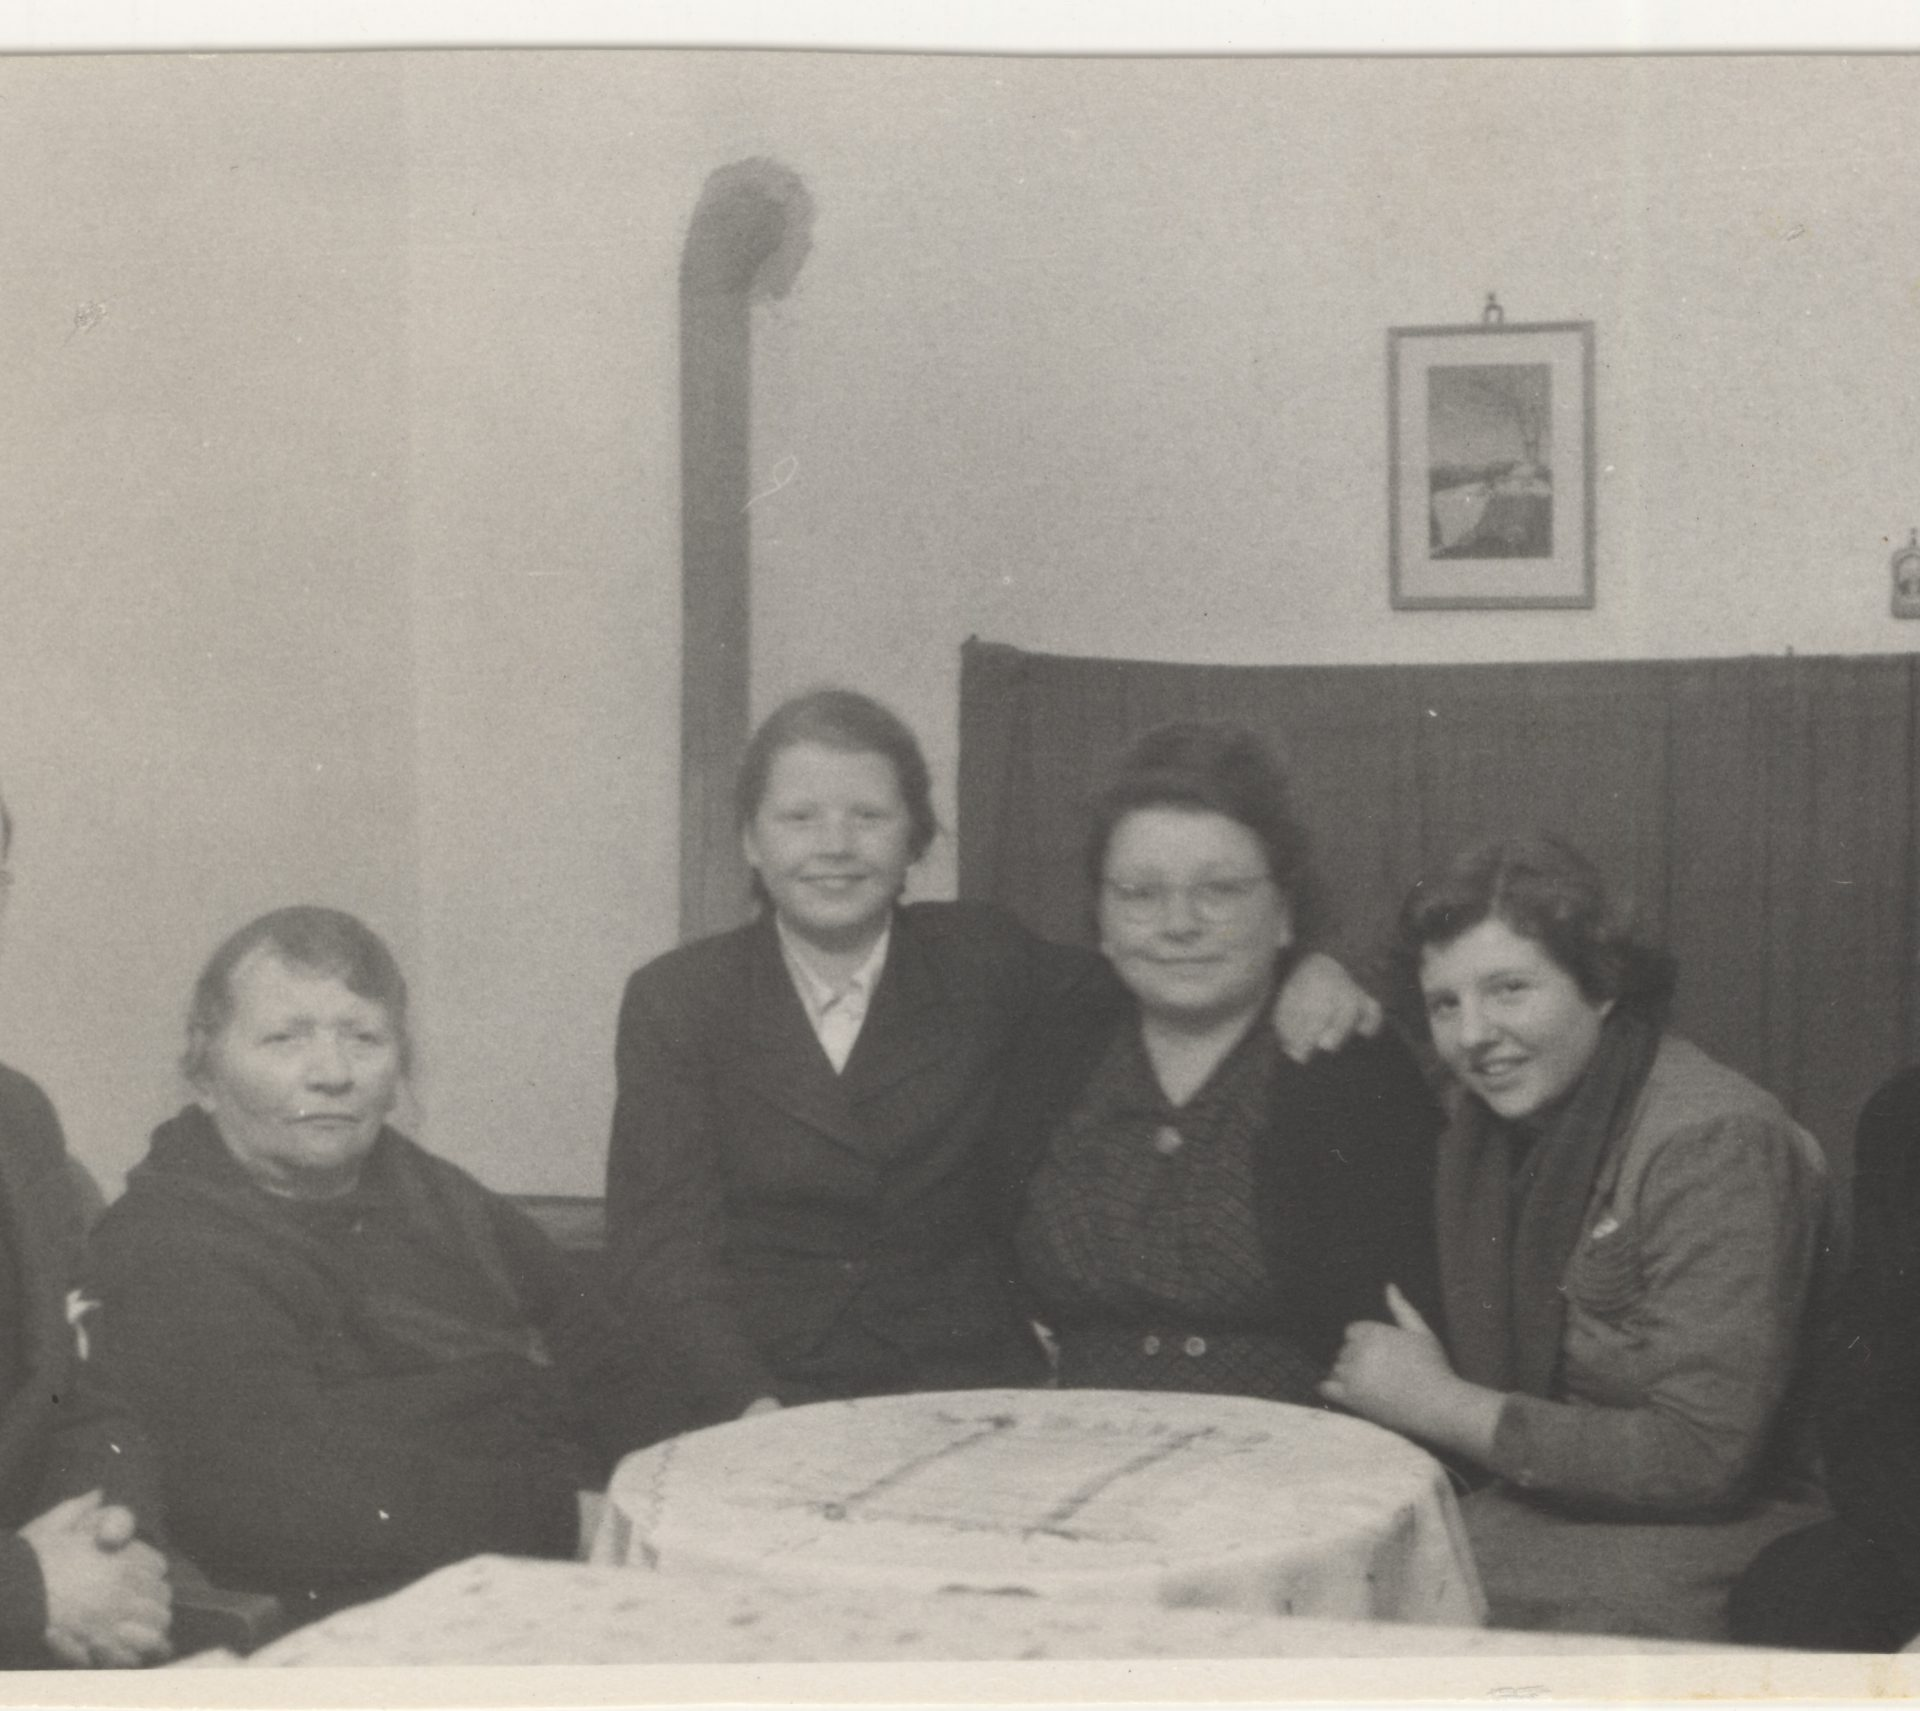 Photograph taken in Berlin before the Voelckers immigrated to Canada. Herbert is on the far left and Karen is third from the left.